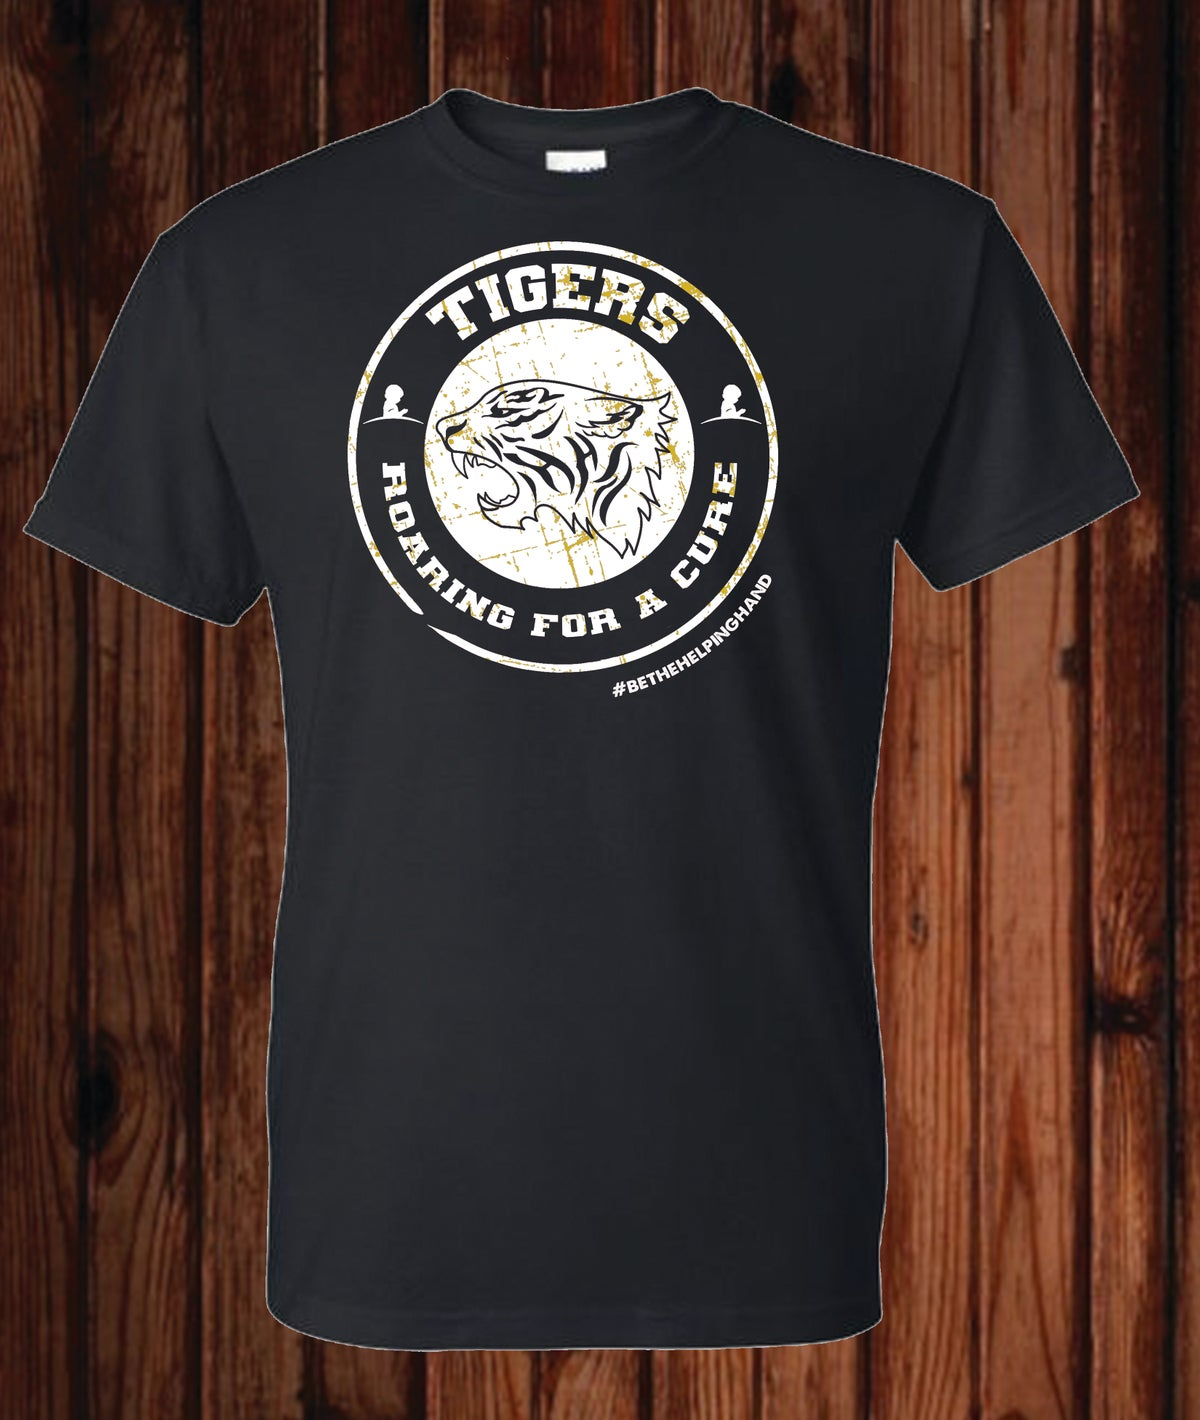 Image of Roaring For a Cure St. Jude Fundraiser T-Shirt